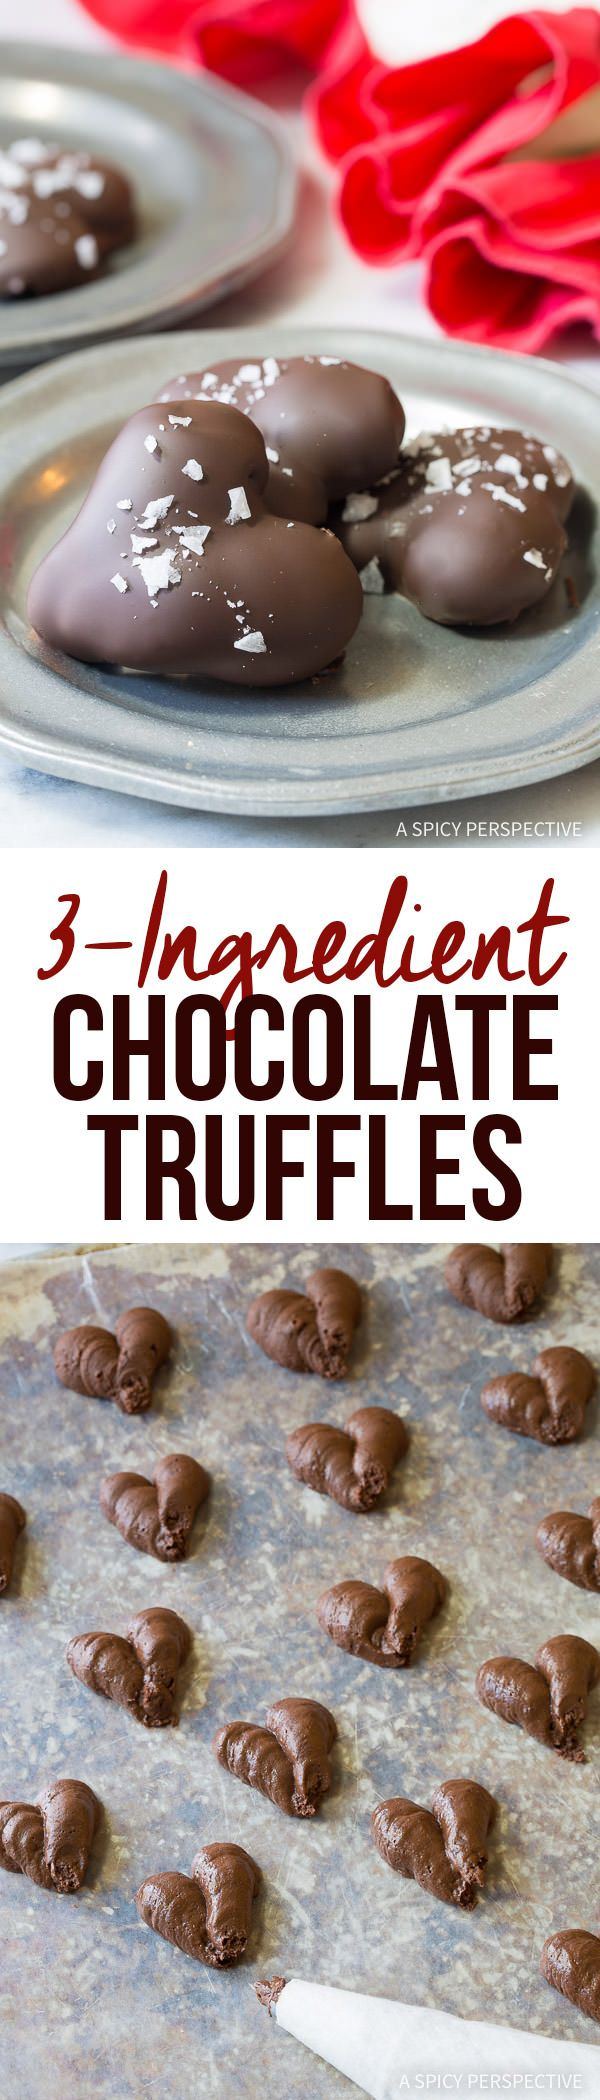 Easy 3-Ingredient Chocolate Truffle Recipe | ASpicyPerspective.com - Fabulous for Valentine's Day!